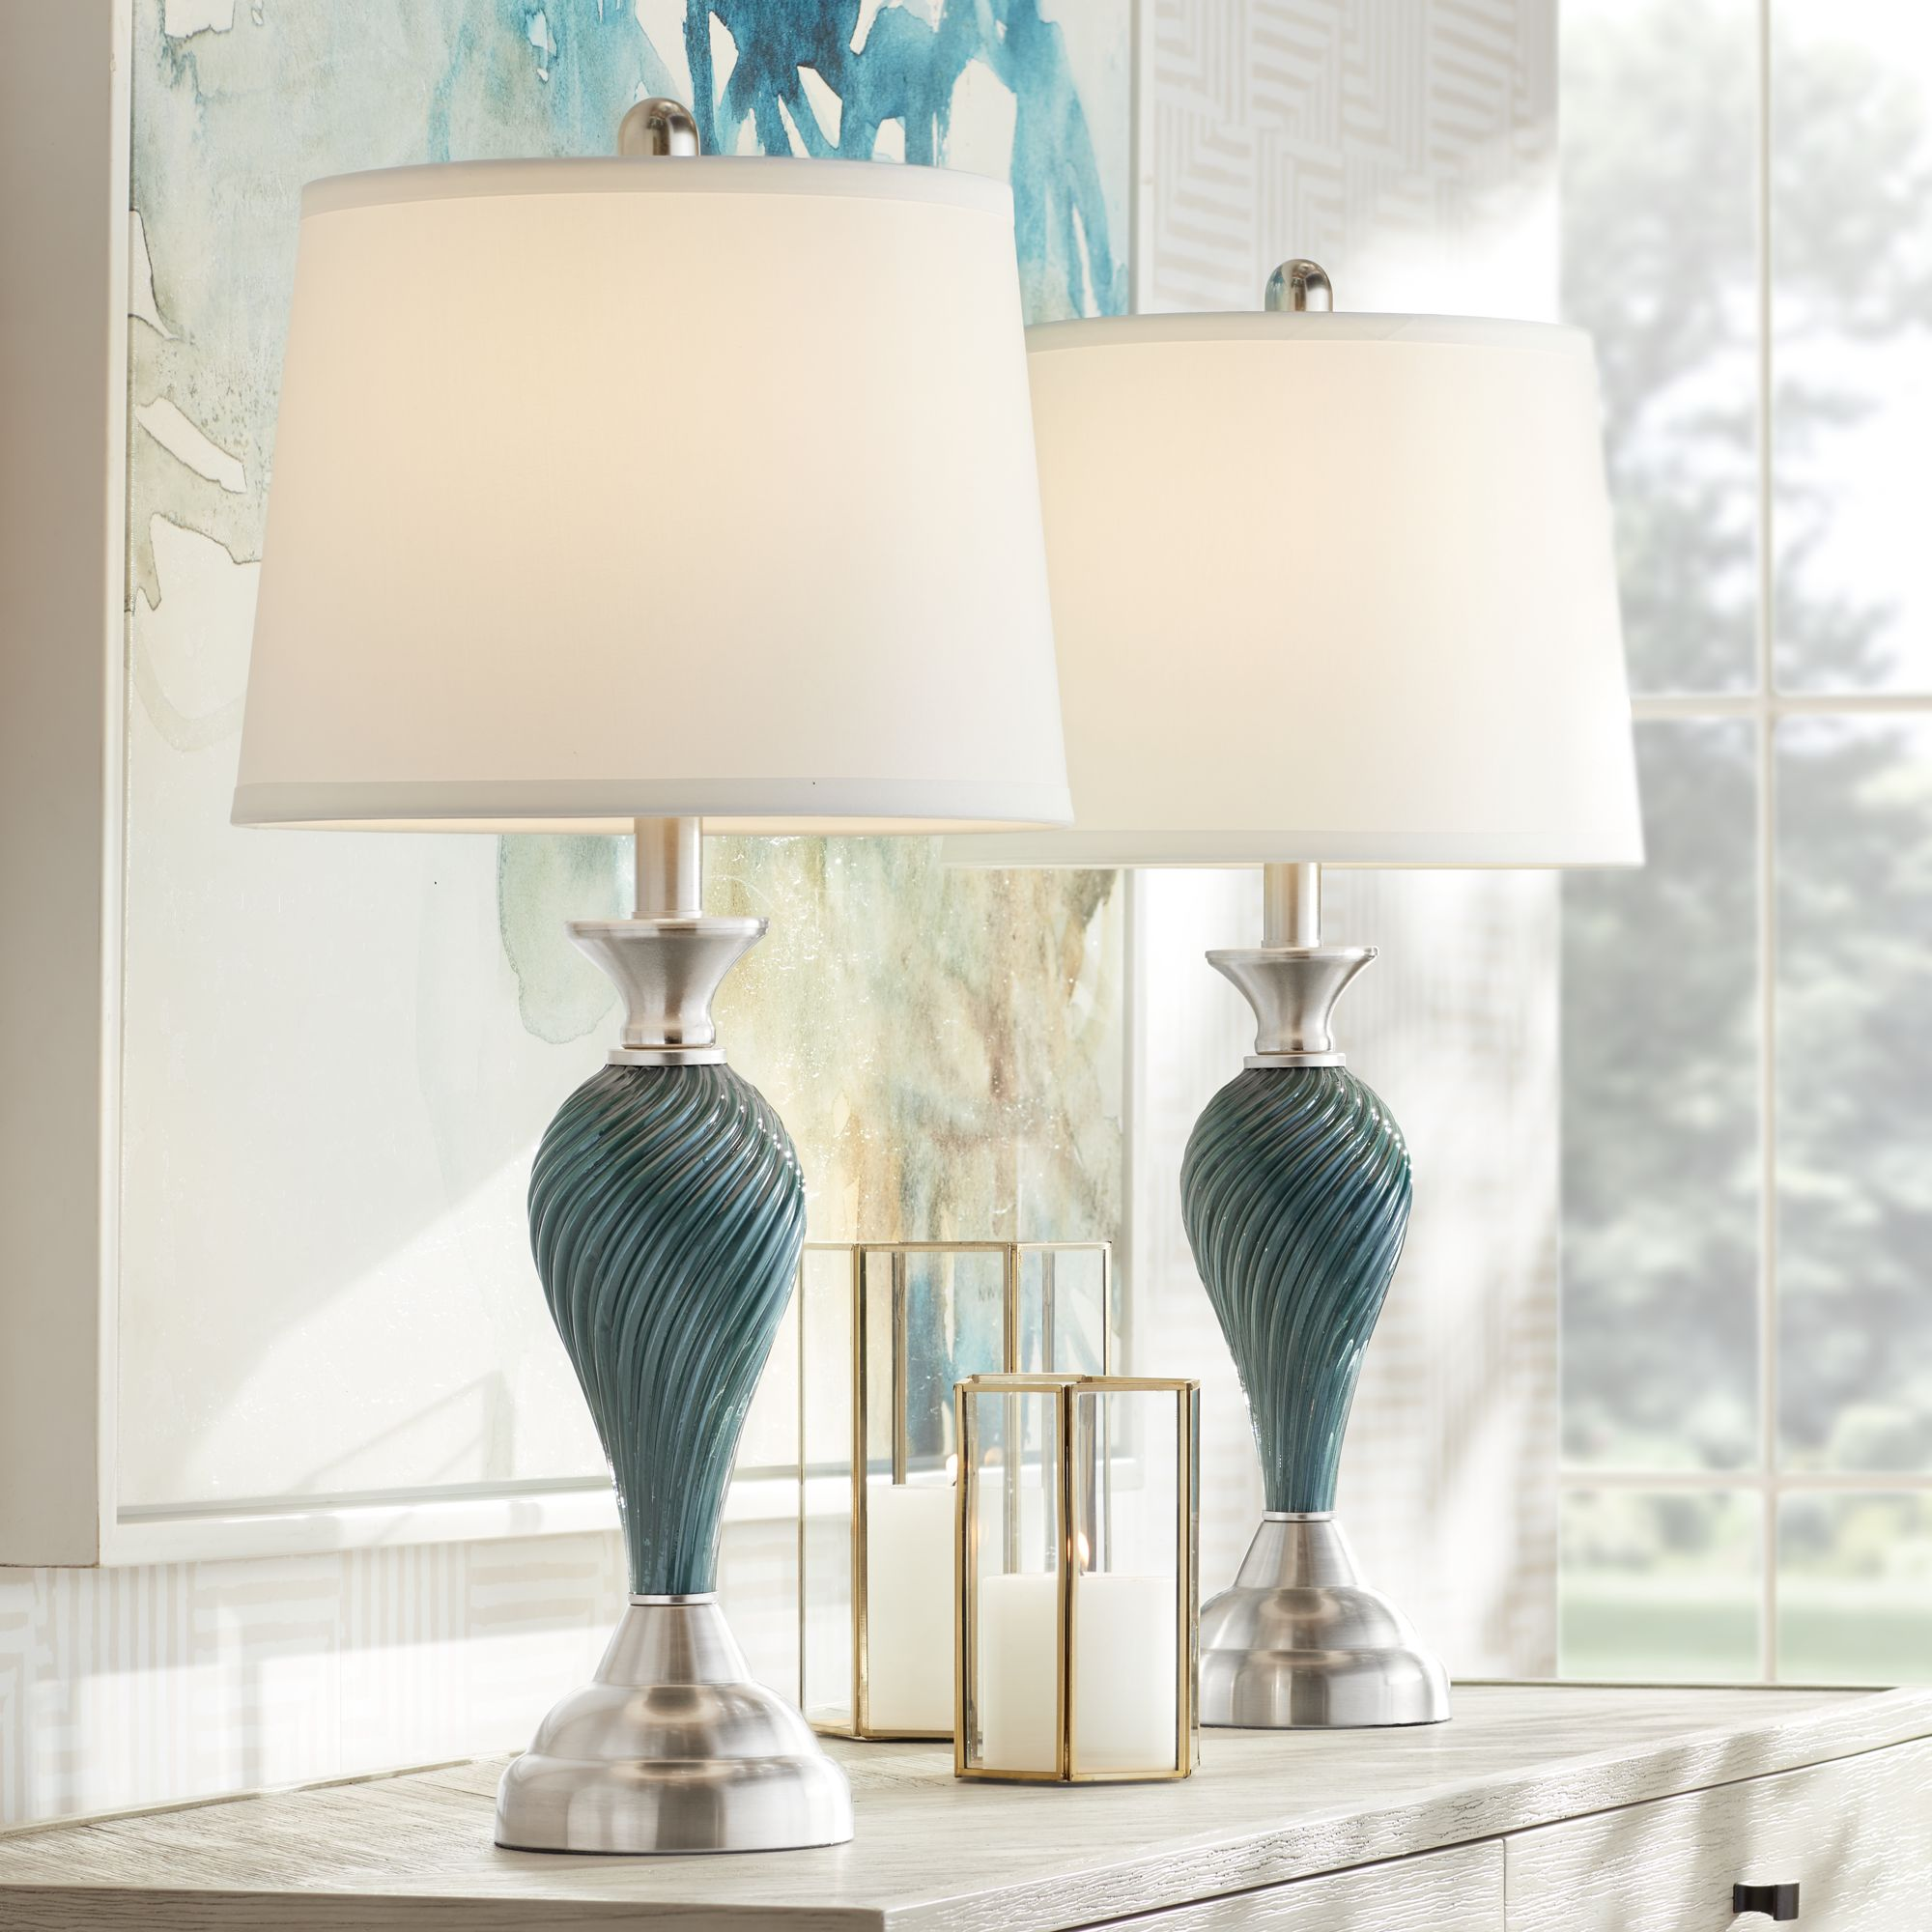 Details About Modern Table Lamps Set Of 2 Green Blue Glass Twist Column Living Room Bedroom